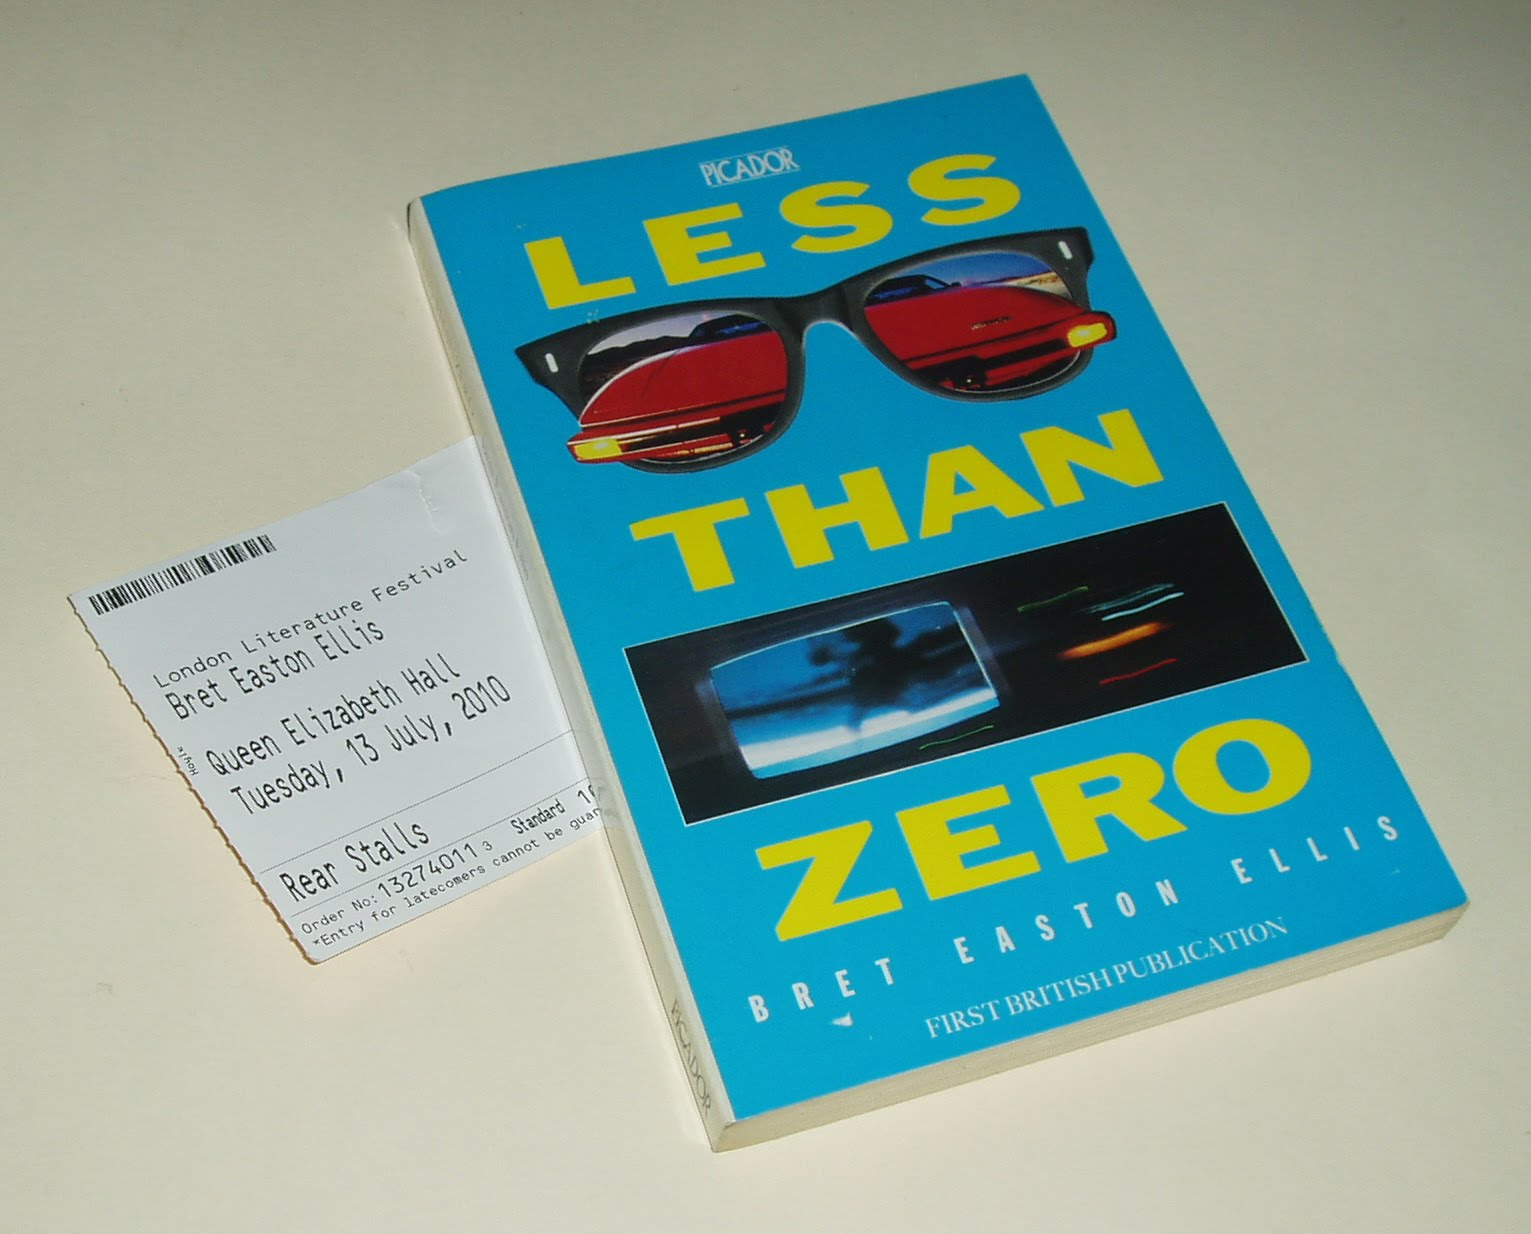 It seems to have gone straight into paperback  without a hardback edition   On Tuesday I went to see Bret Easton Ellis talking about Imperial Bedrooms. Andrew Amesbury  July 2010